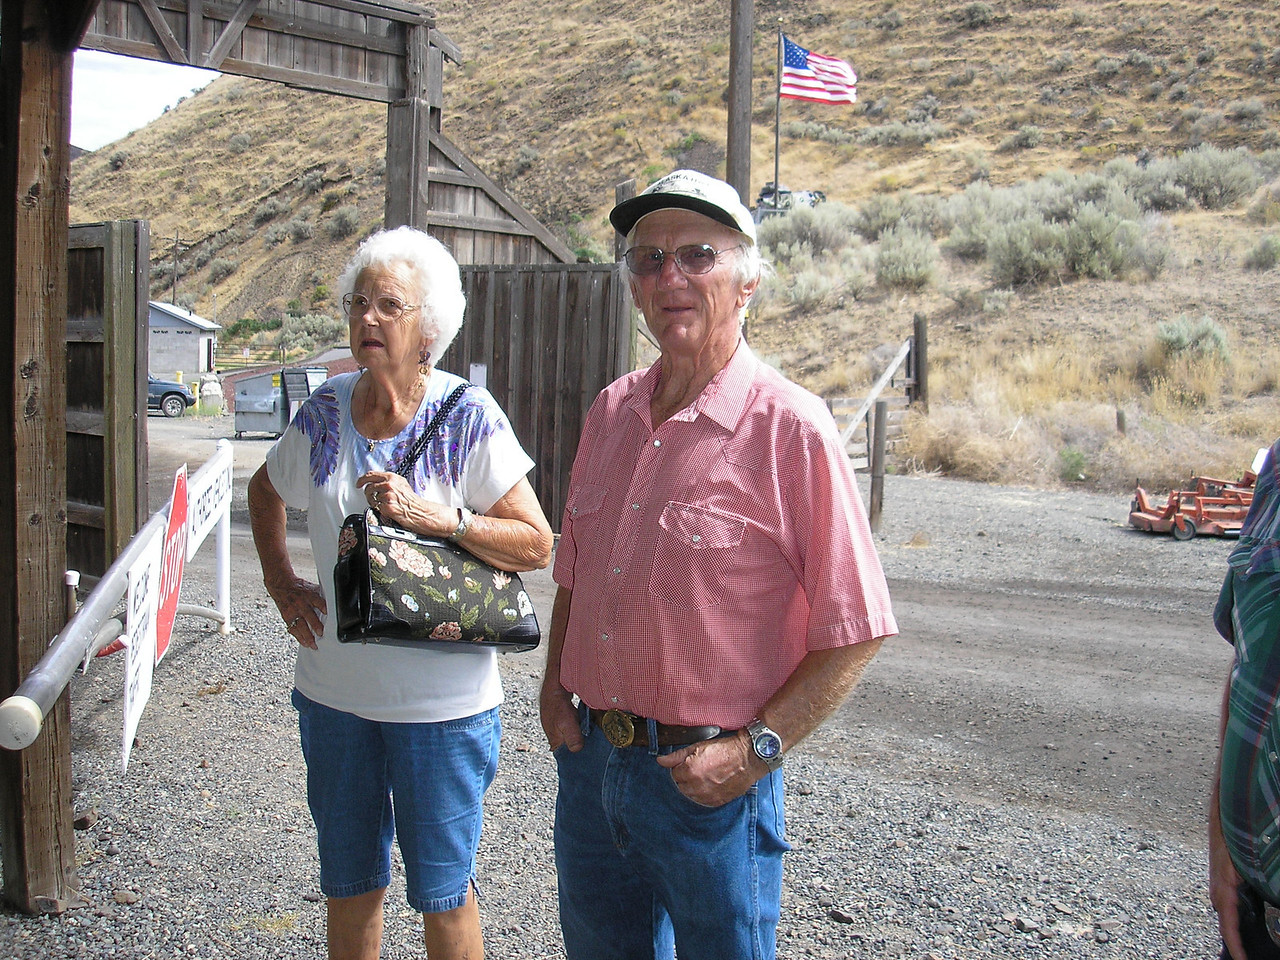 We stayed with Jeanie's Uncle David and Aunt May. They live in Naches, Washington.